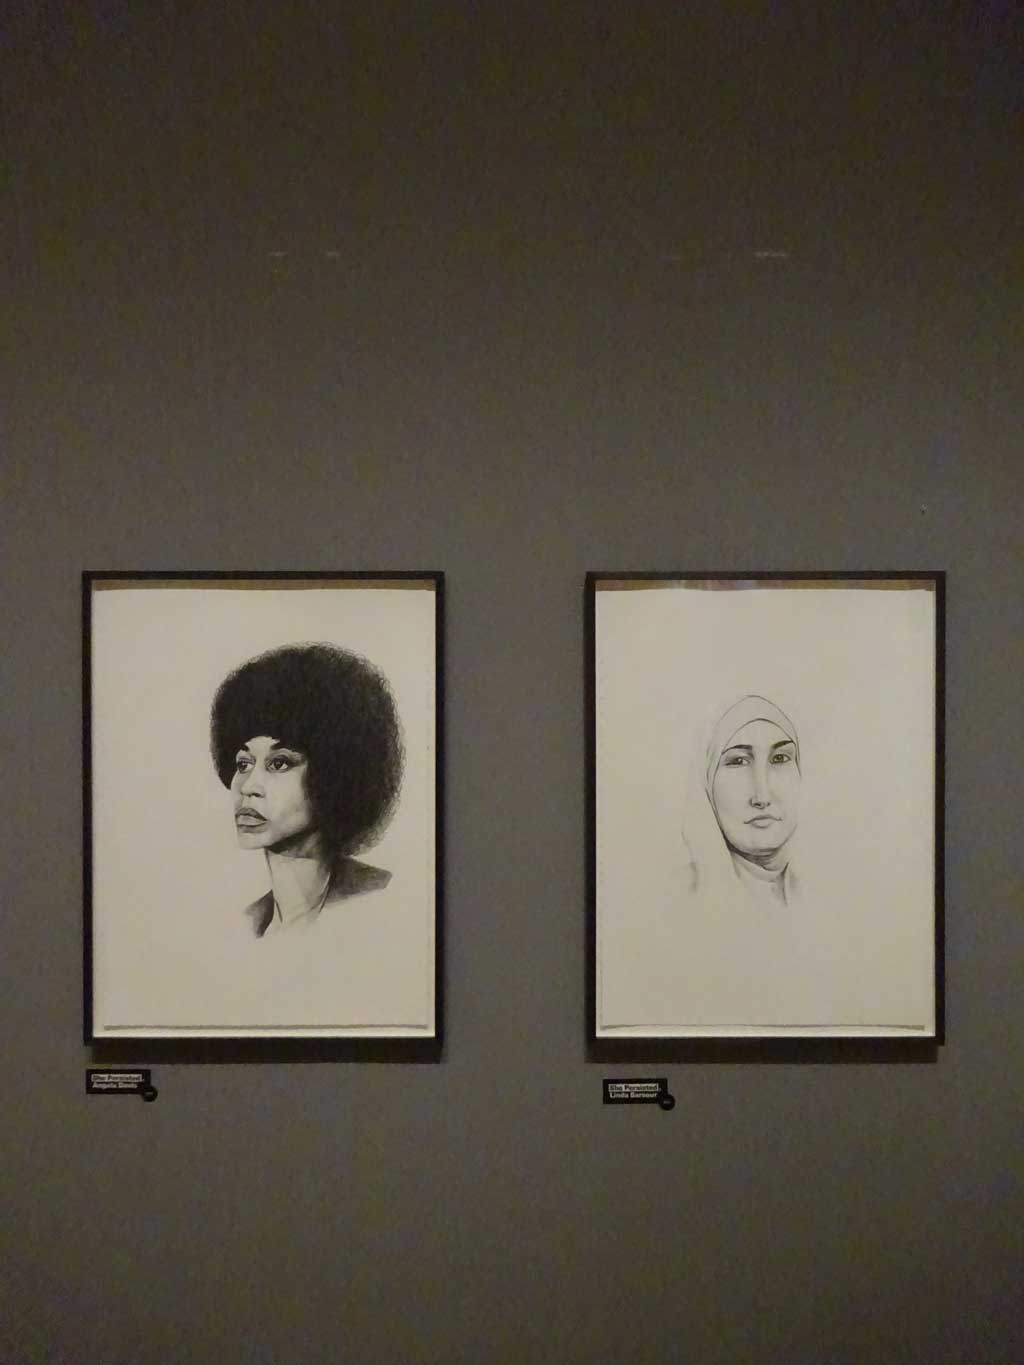 Schirn: Kate Holten - She Persisted, Angela Davis